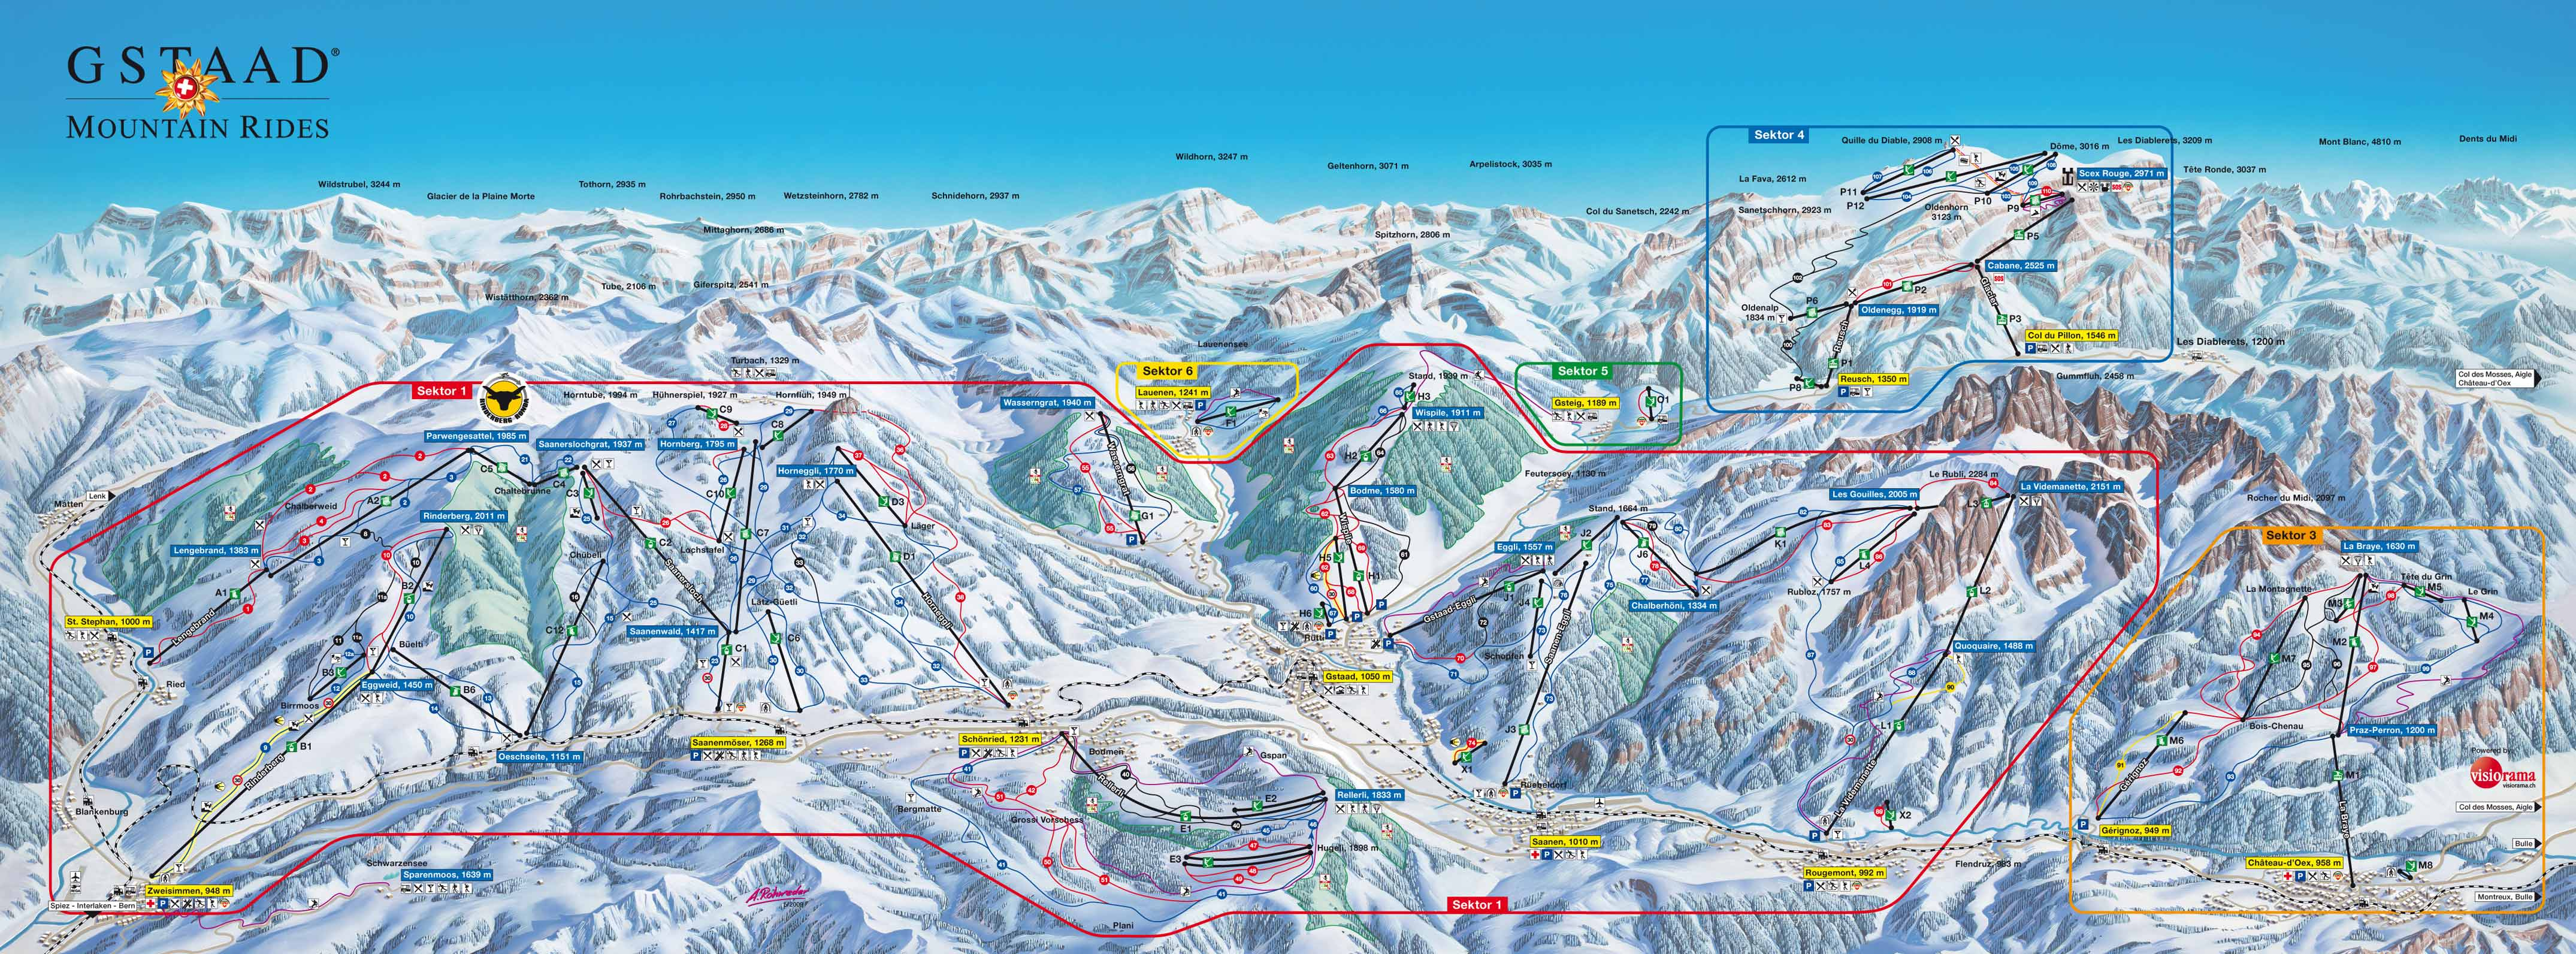 Gstaad - Saanen - Rougemont Piste / Trail Map